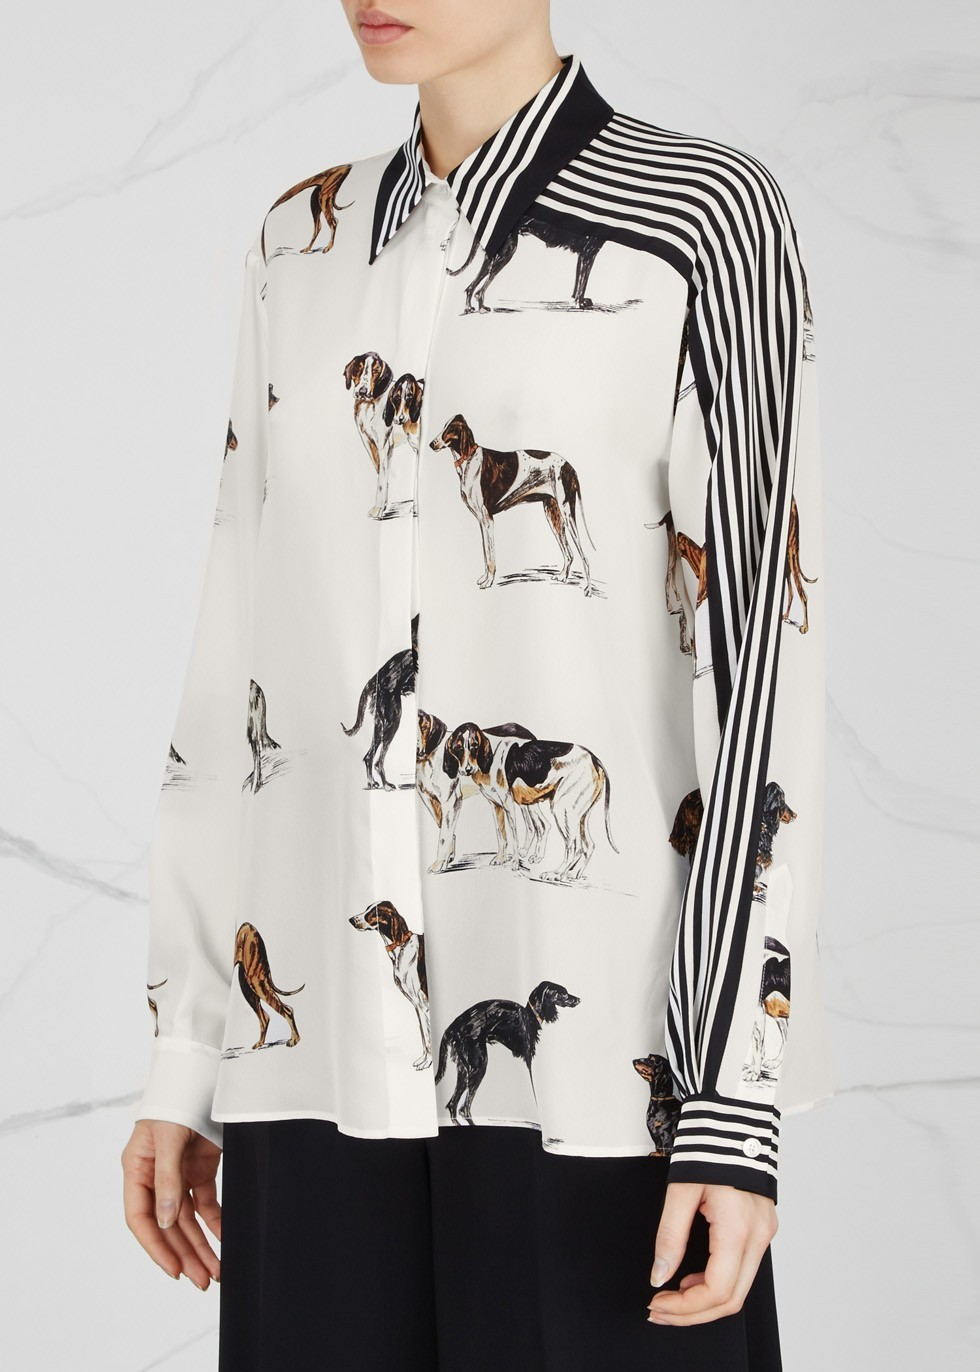 17SS SM332 DOG & STRIPE PRINTED 'TESS' SILK BLOUSE